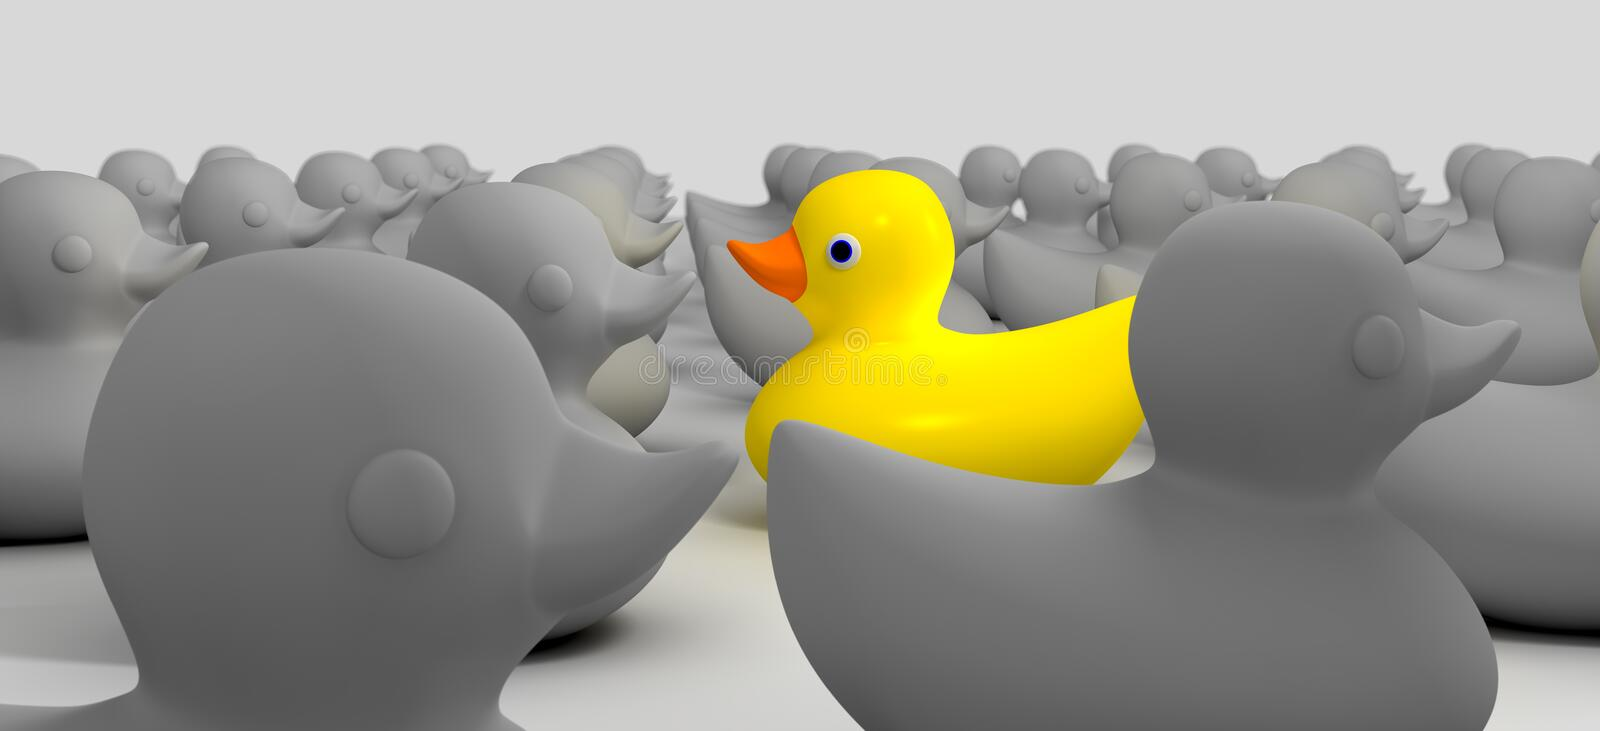 Rubber Duck Against The Flow royalty free illustration